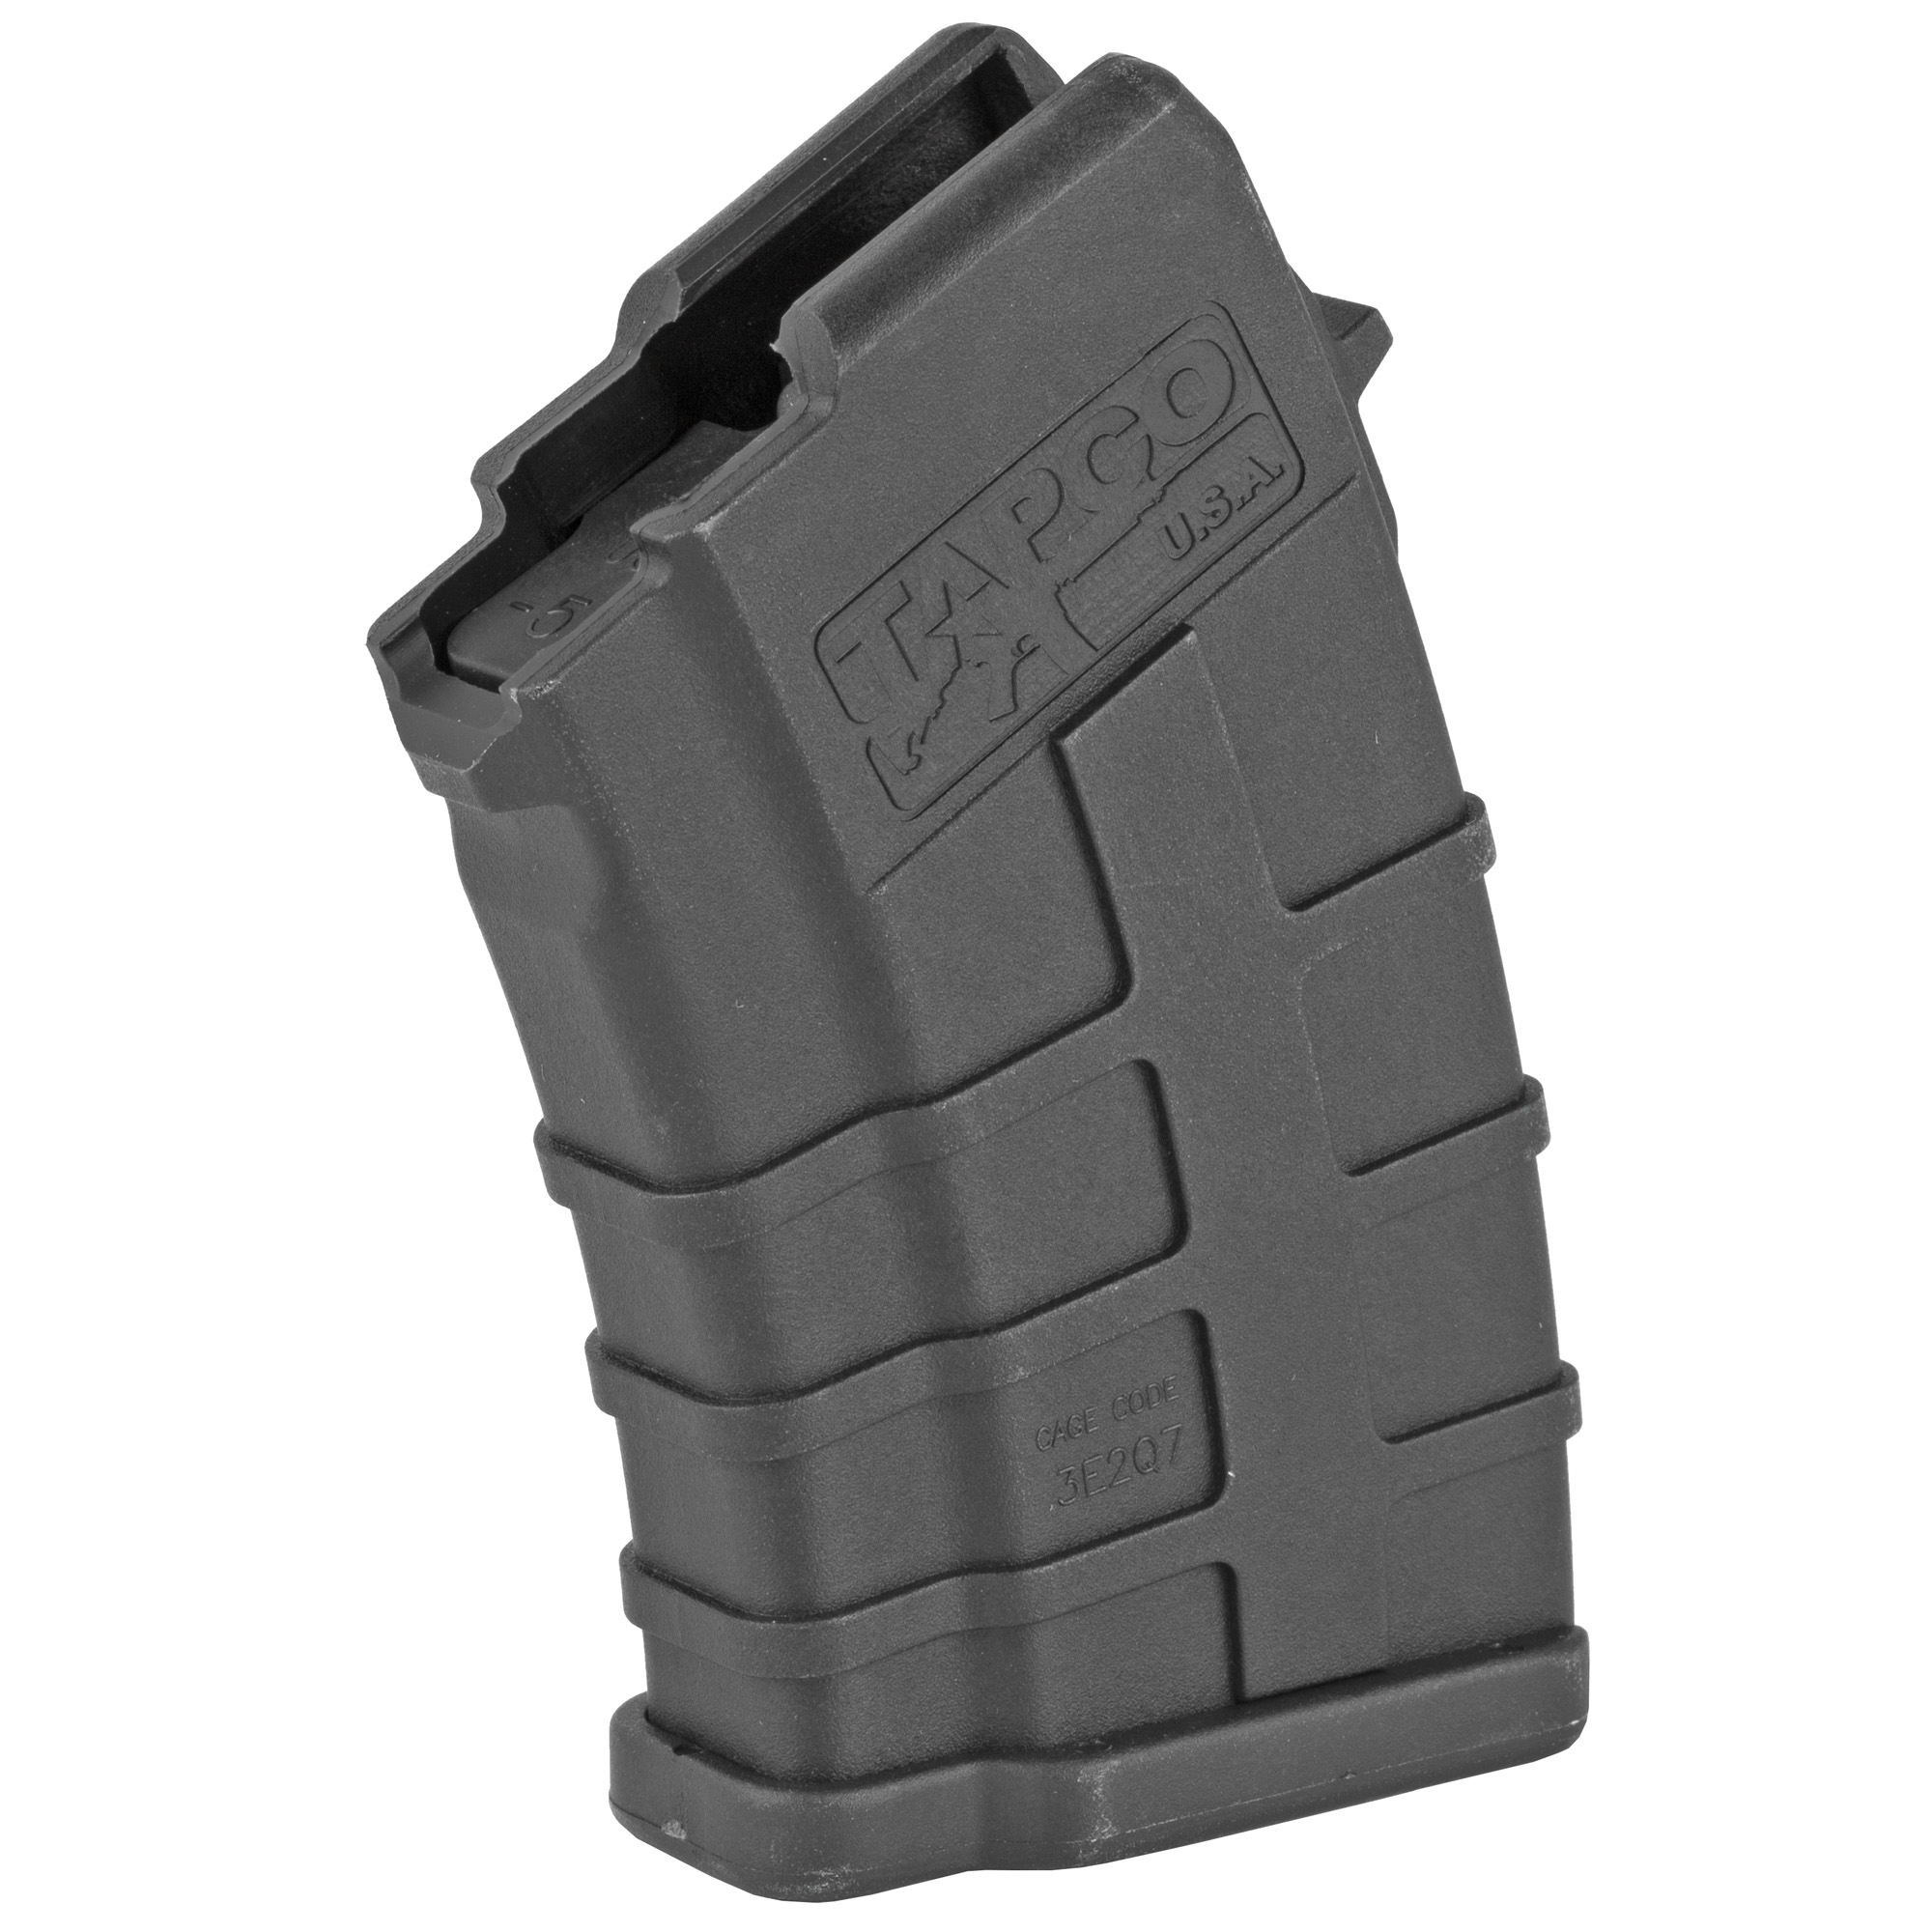 Can't find a rugged and reliable low capacity AK mag? The Tapco 5rd AK-47 Magazine is your answer. The reinforced composite material prevents corrosion while the heavy duty spring and anti-tilt follower ensure that every round will feed perfectly. Fits the AK-47 using 7.62x39mm ammunition. Not to mention that it counts as 3 U.S. 922r compliant parts.